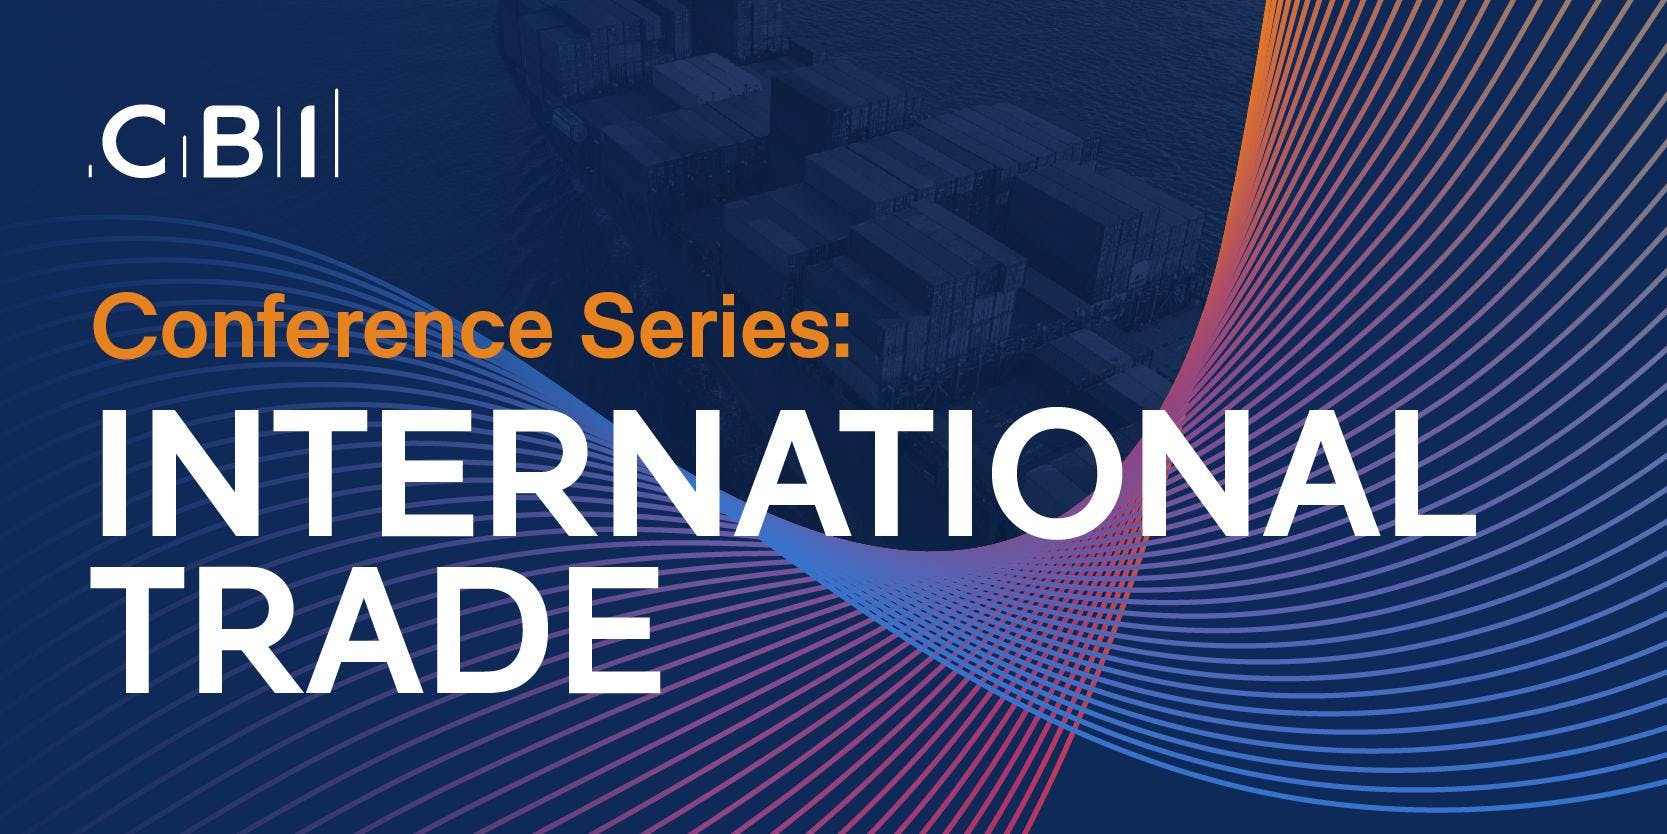 Conference Series: International Trade